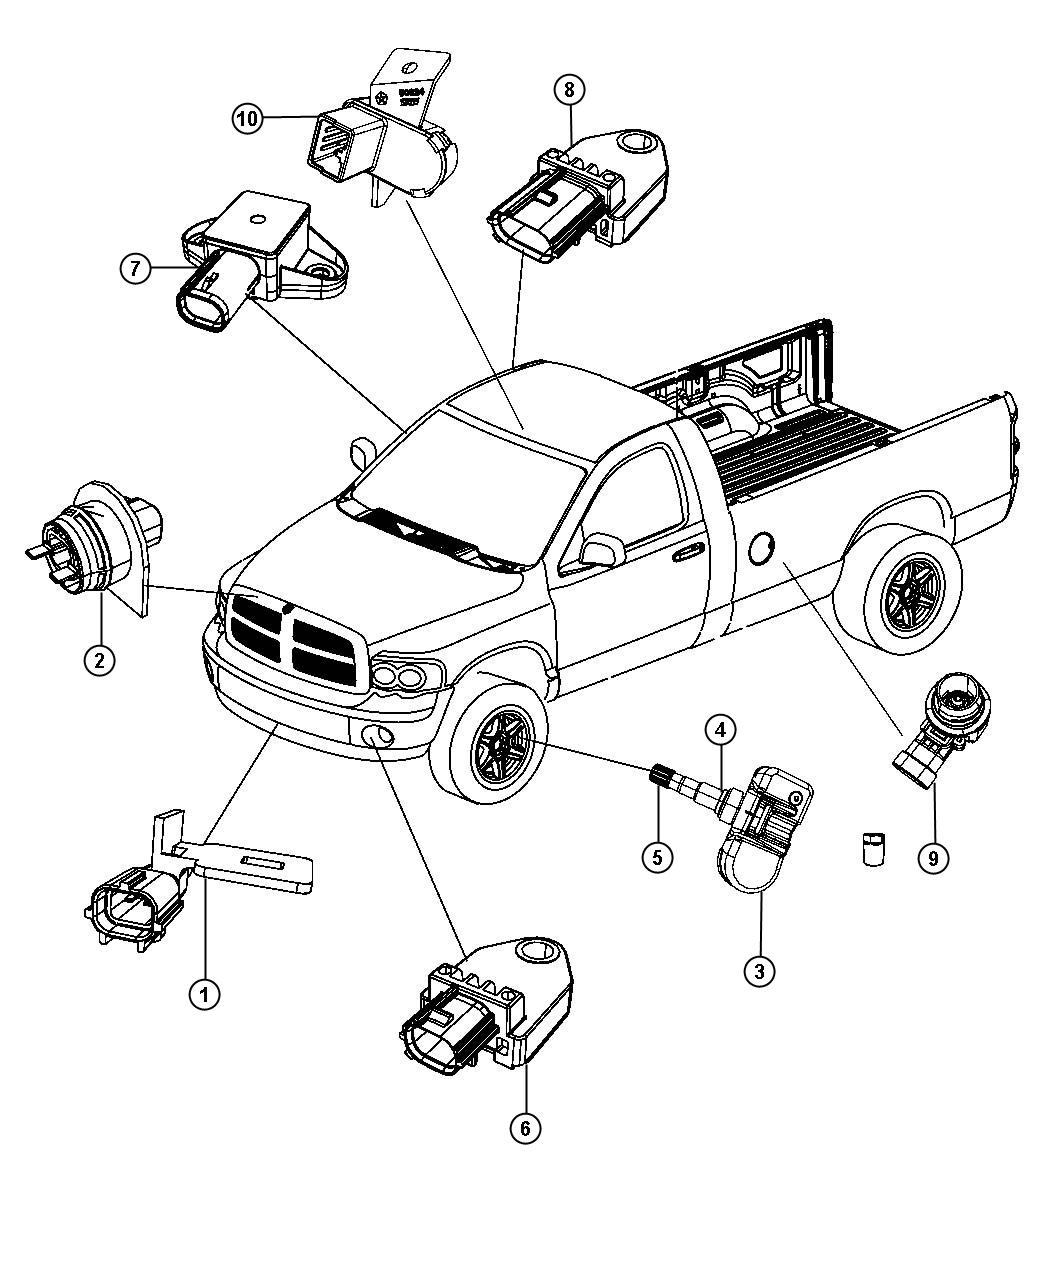 2009 Jeep Liberty Sky Slider Parts Diagram • Wiring